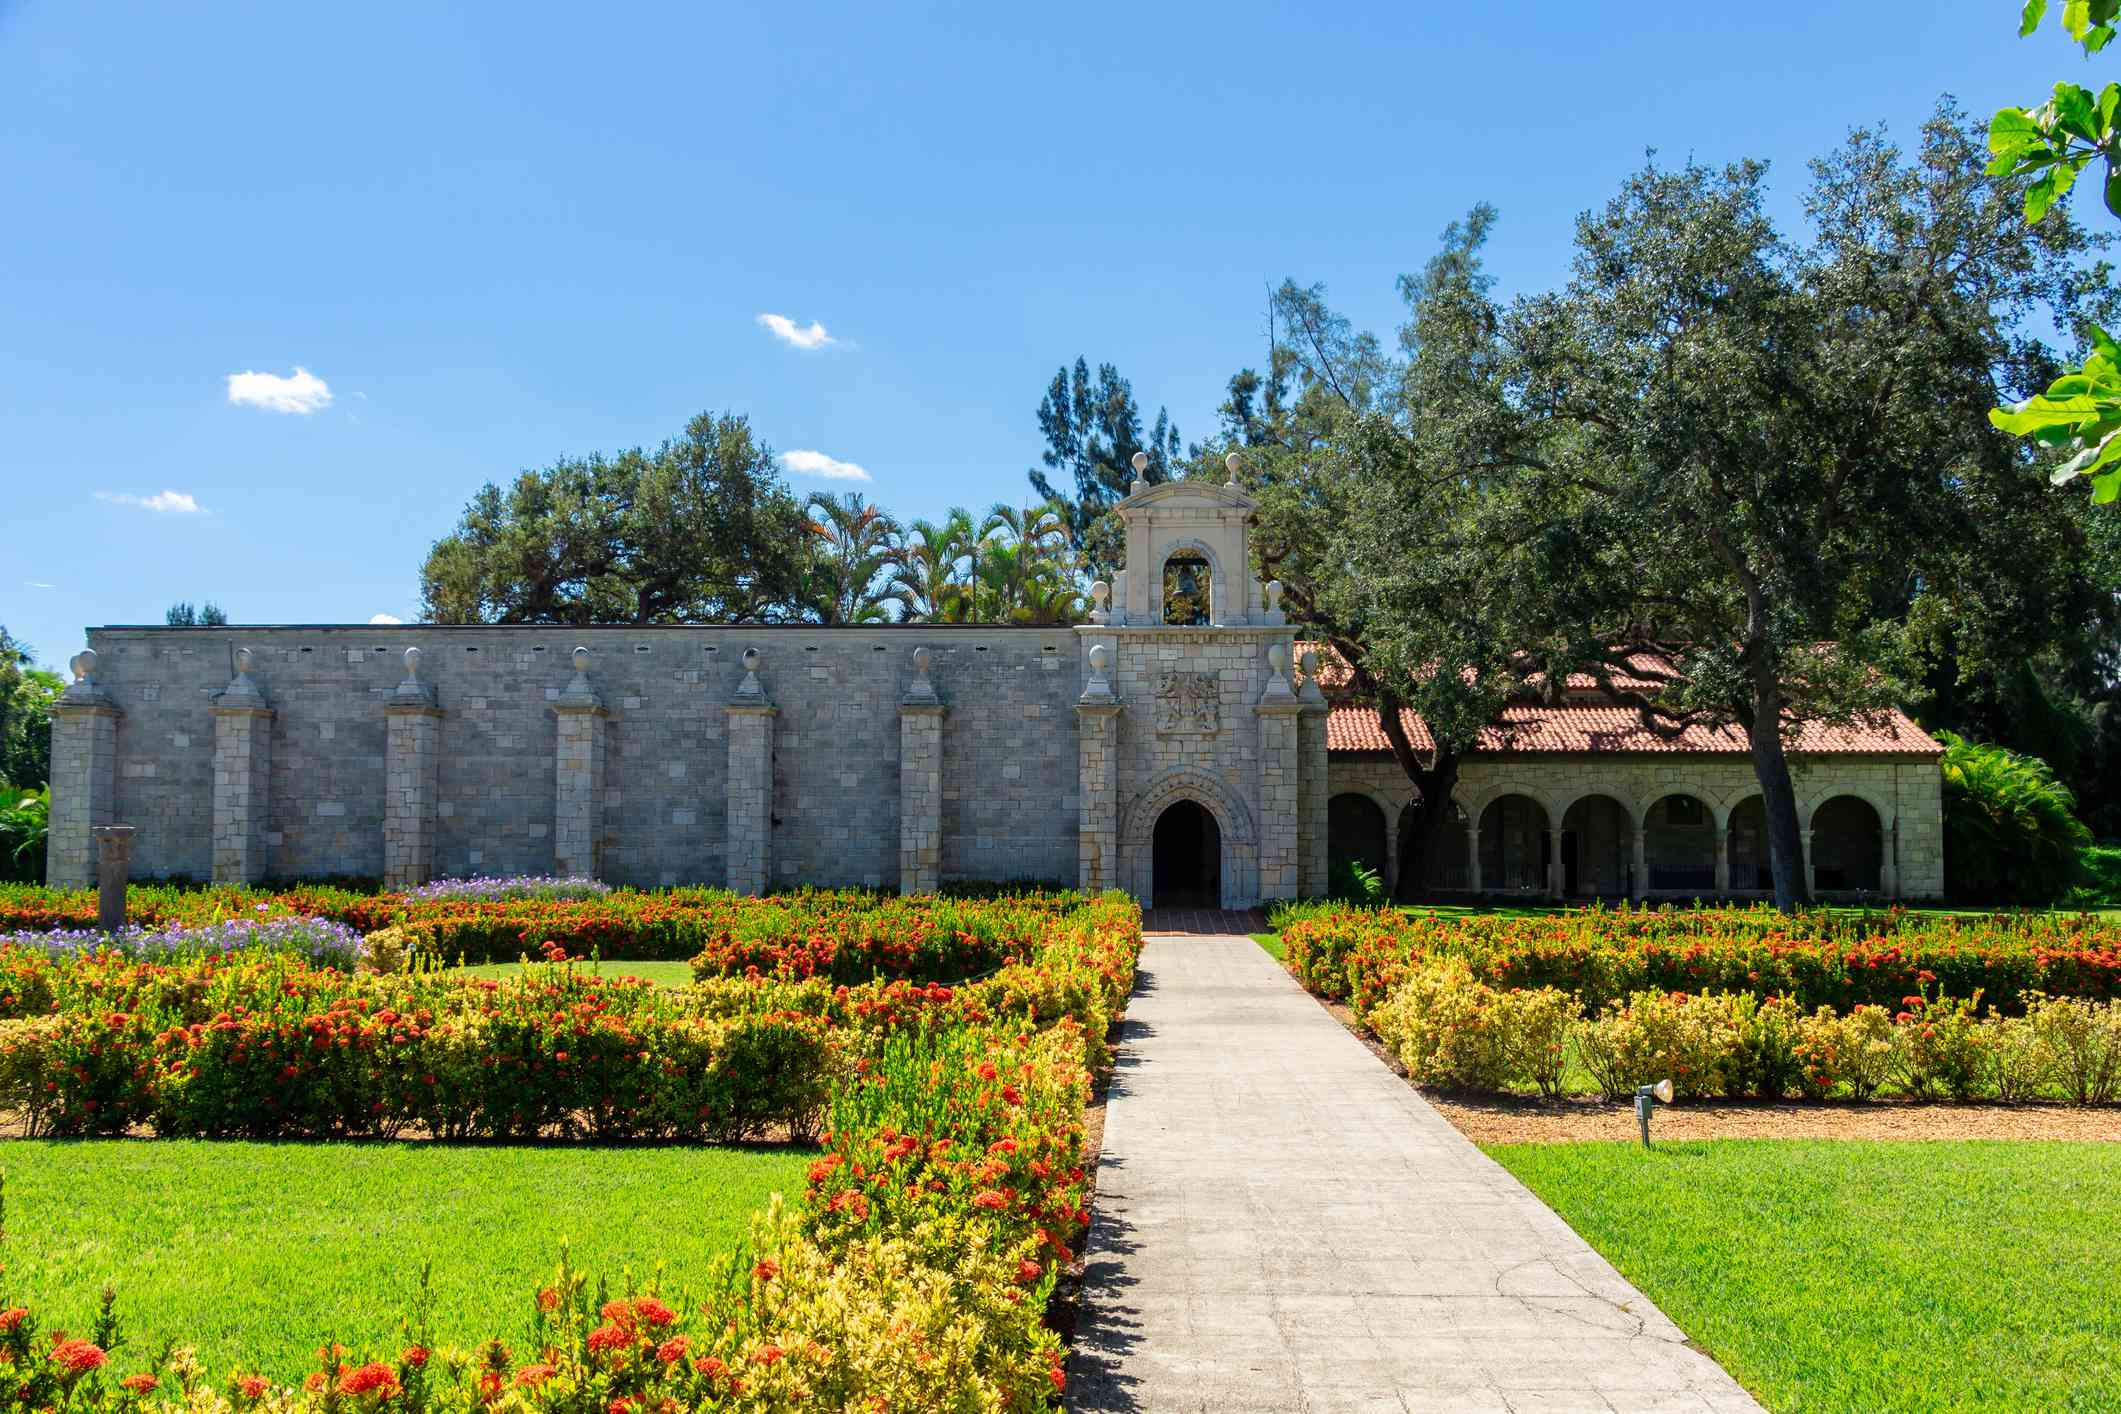 The exterior of a 12th century Spanish monastery. This building was disassembled, brought from Spain to Florida, and reassembled stone by stone